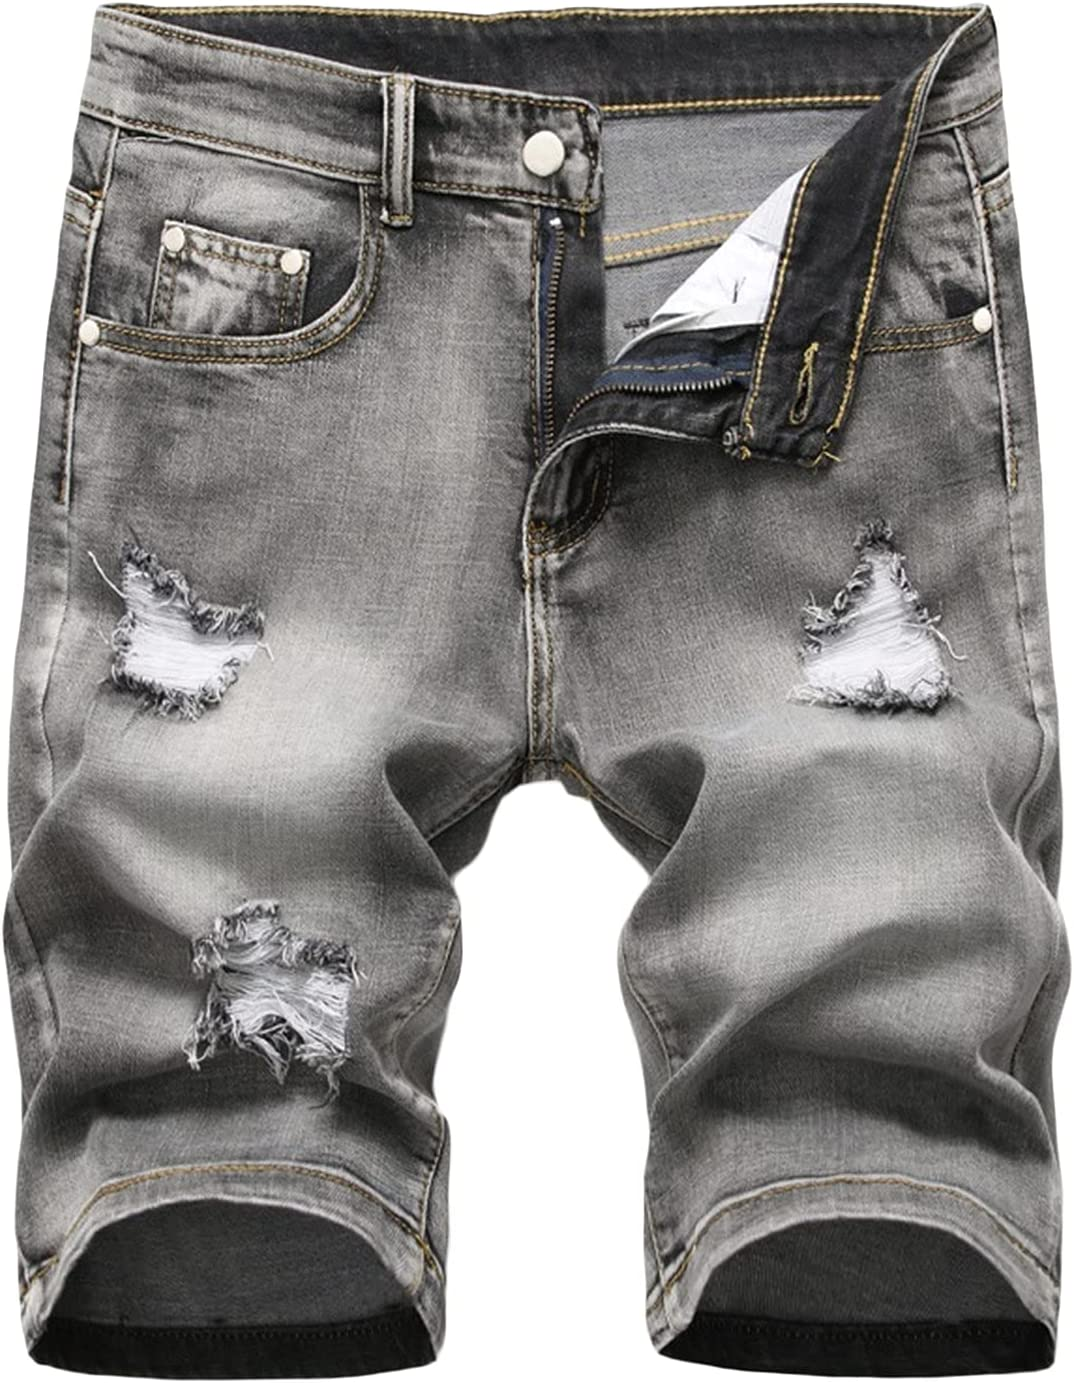 Men's Ripped Denim Shorts Washed Distressed Slim Jean Short Five Pockets Holes Retro Casual Knee Length Jeans Short (Grey,28)